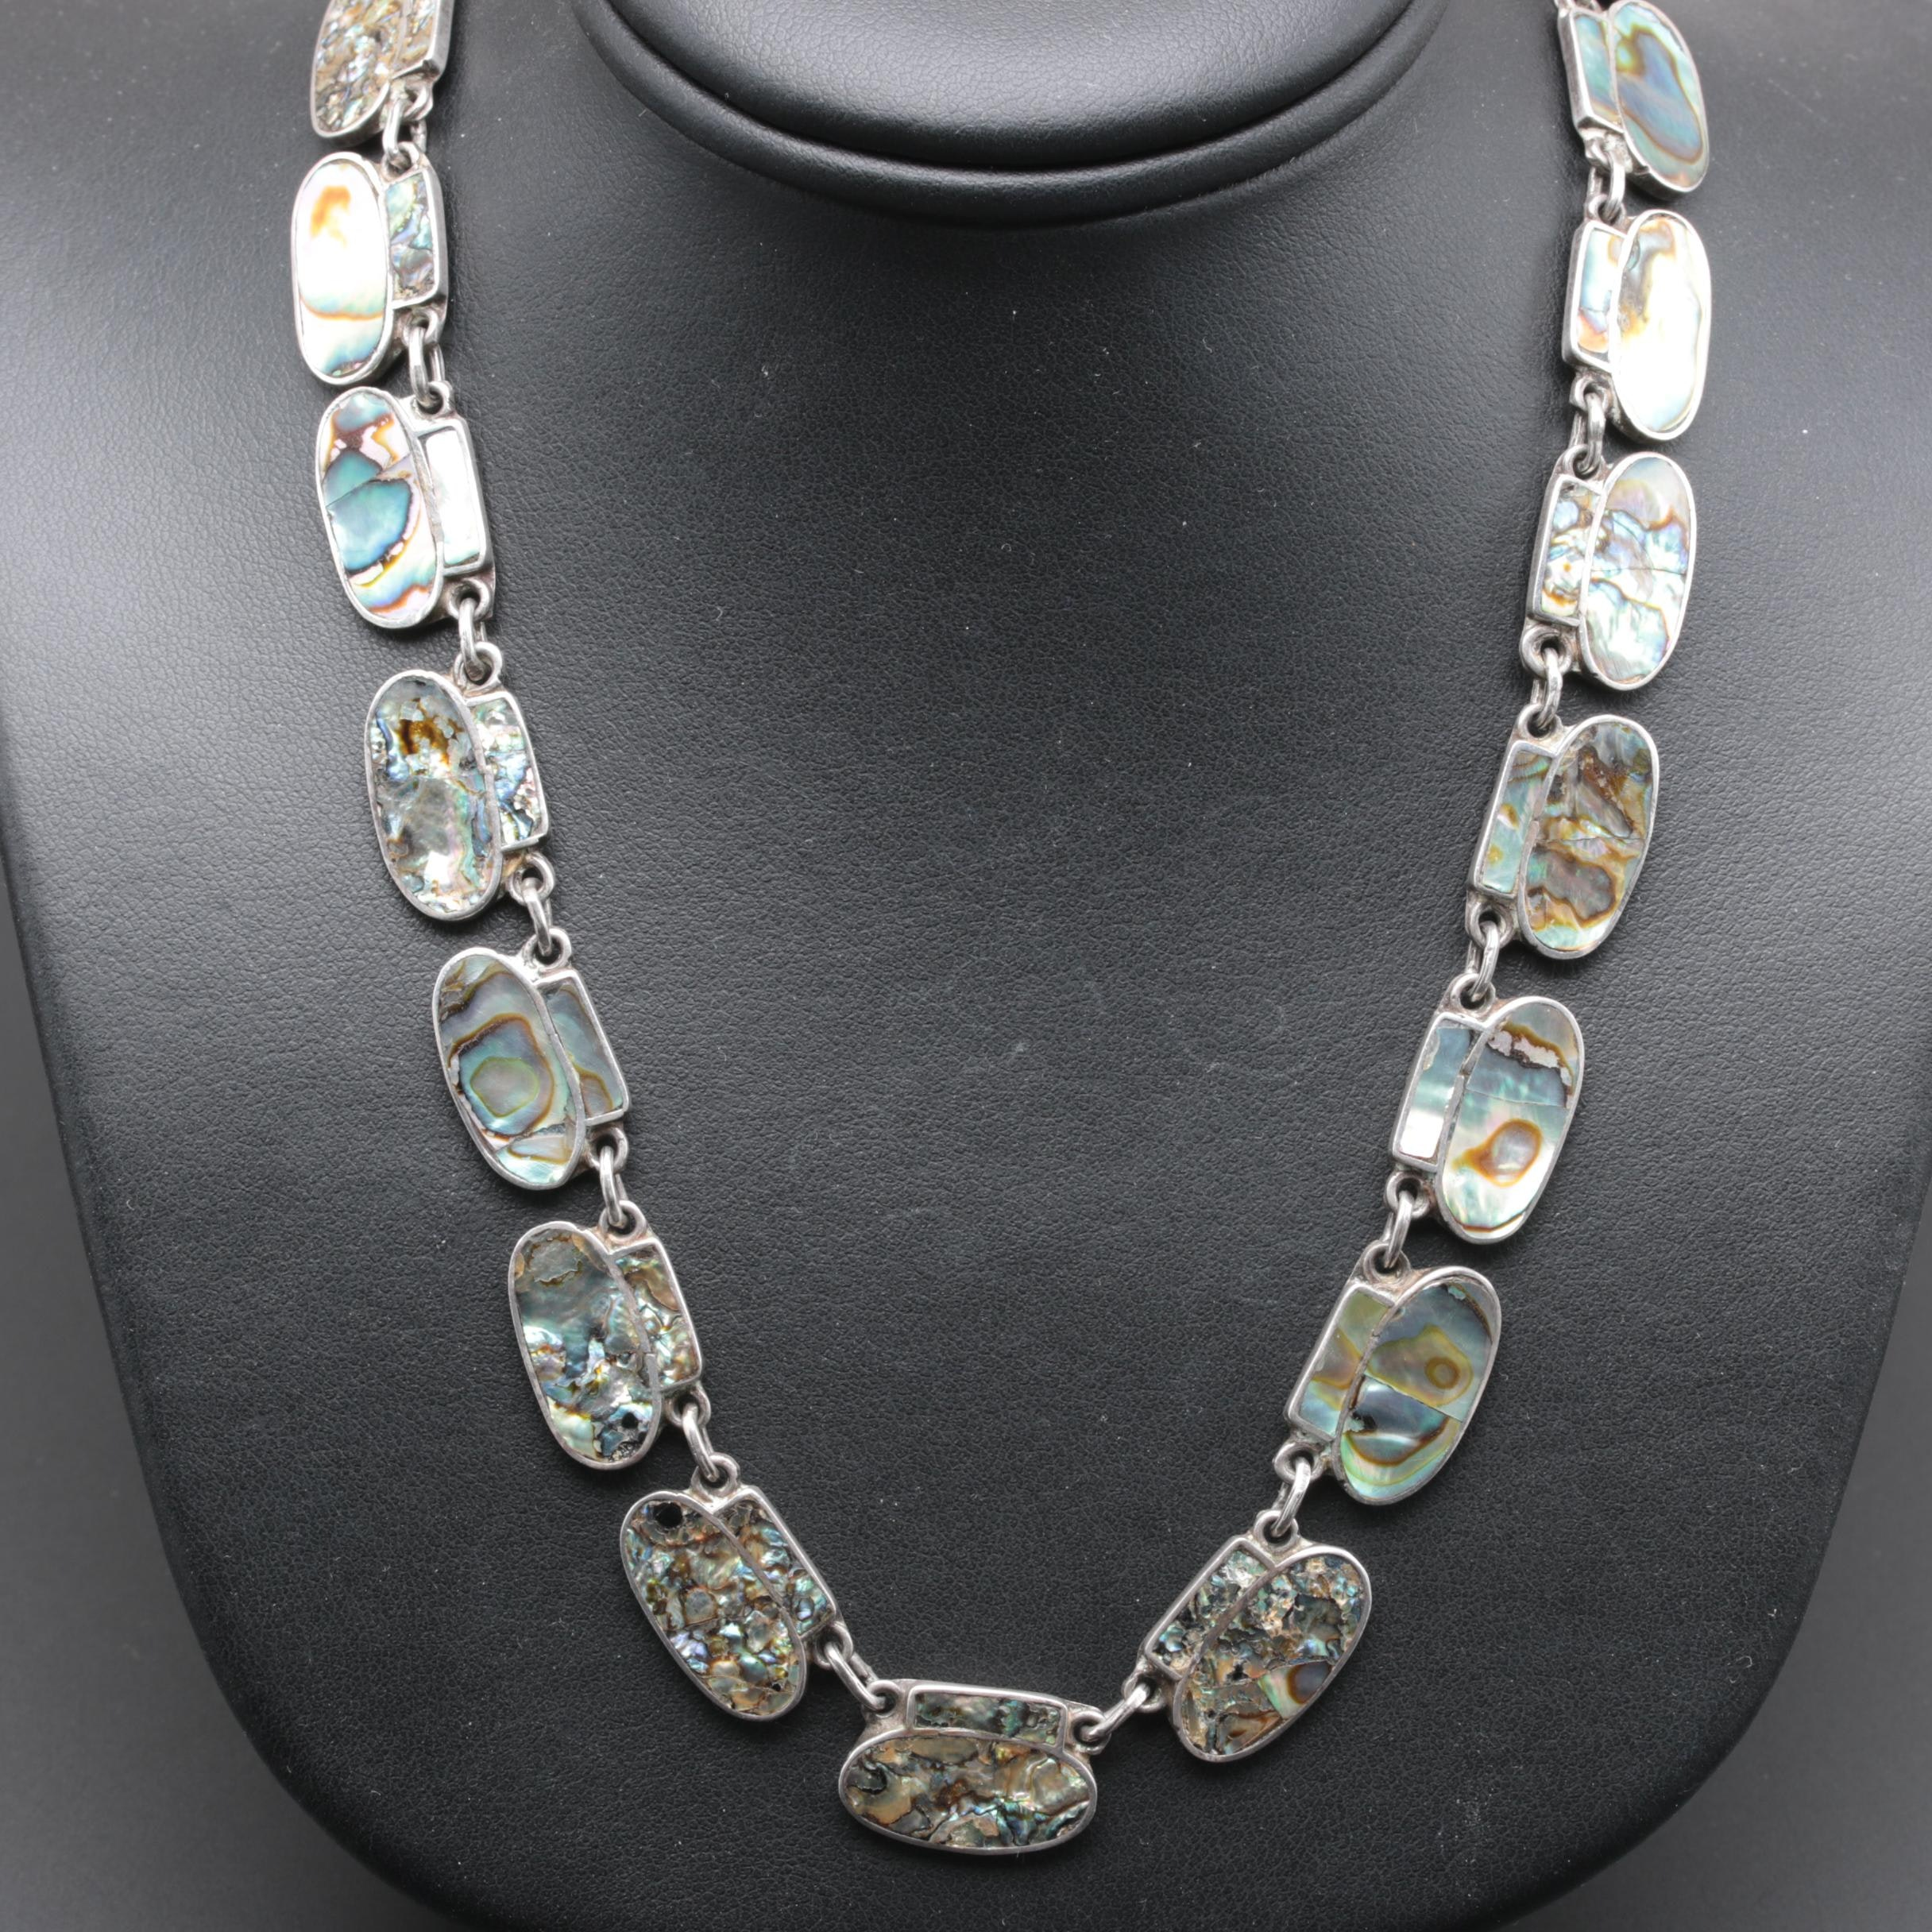 Mexico Sterling Silver Abalone Necklace